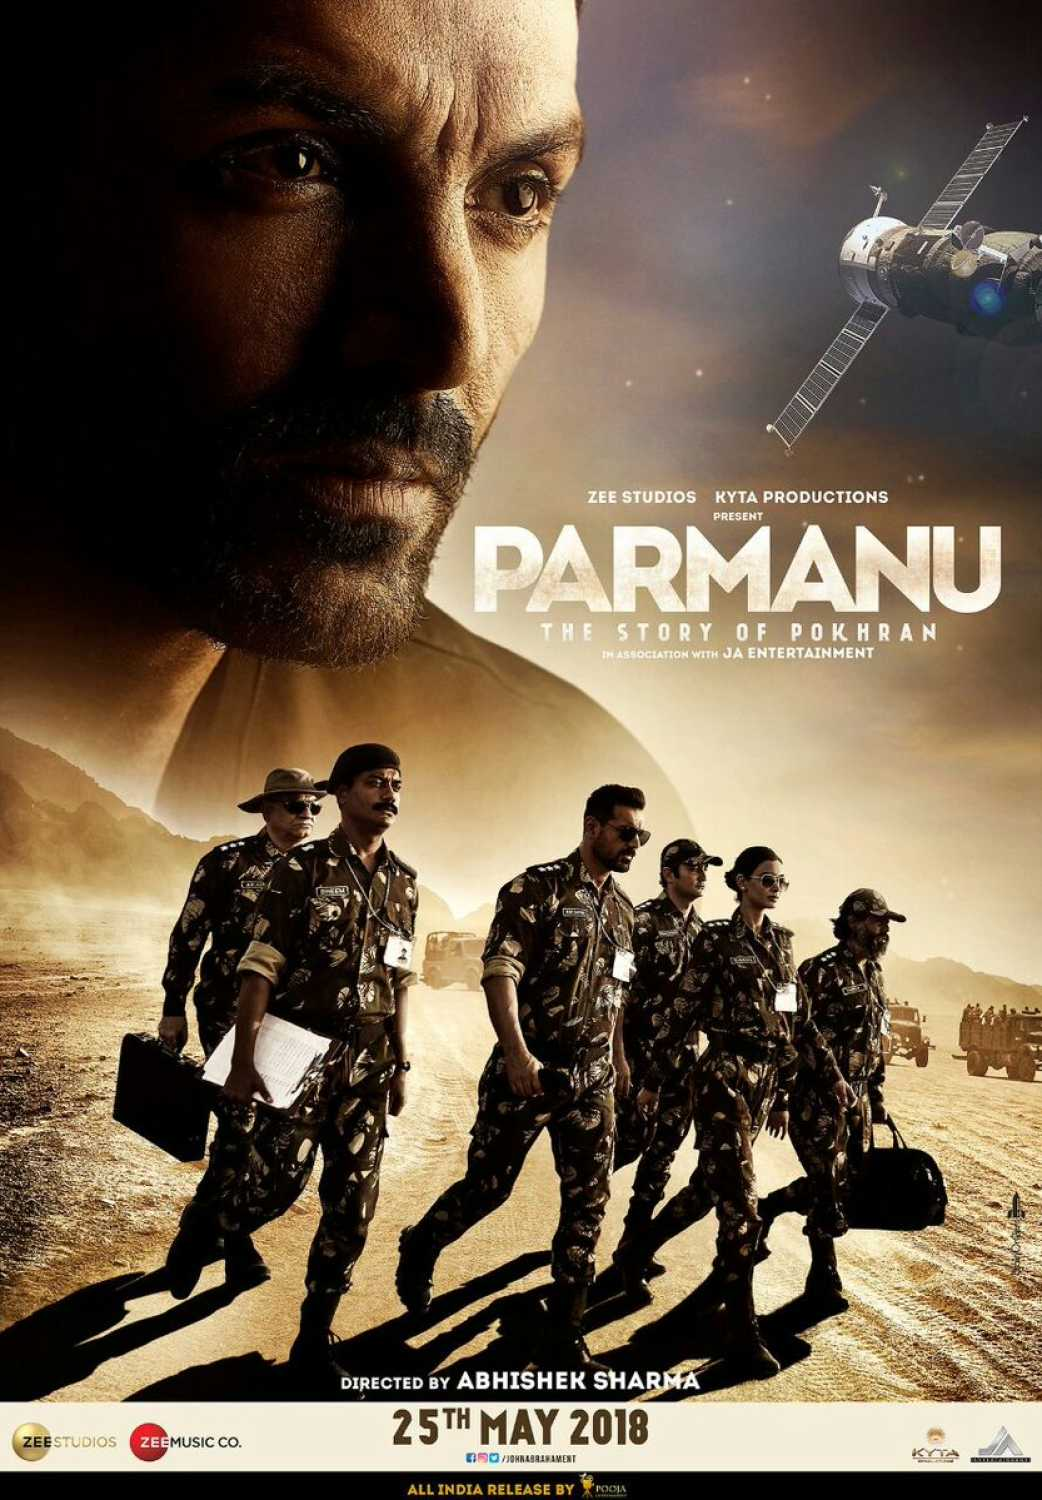 Parmanu%20The%20Story%20of%20Pokhran%202018.3 دانلود فیلم Parmanu: The Story of Pokhran 2018